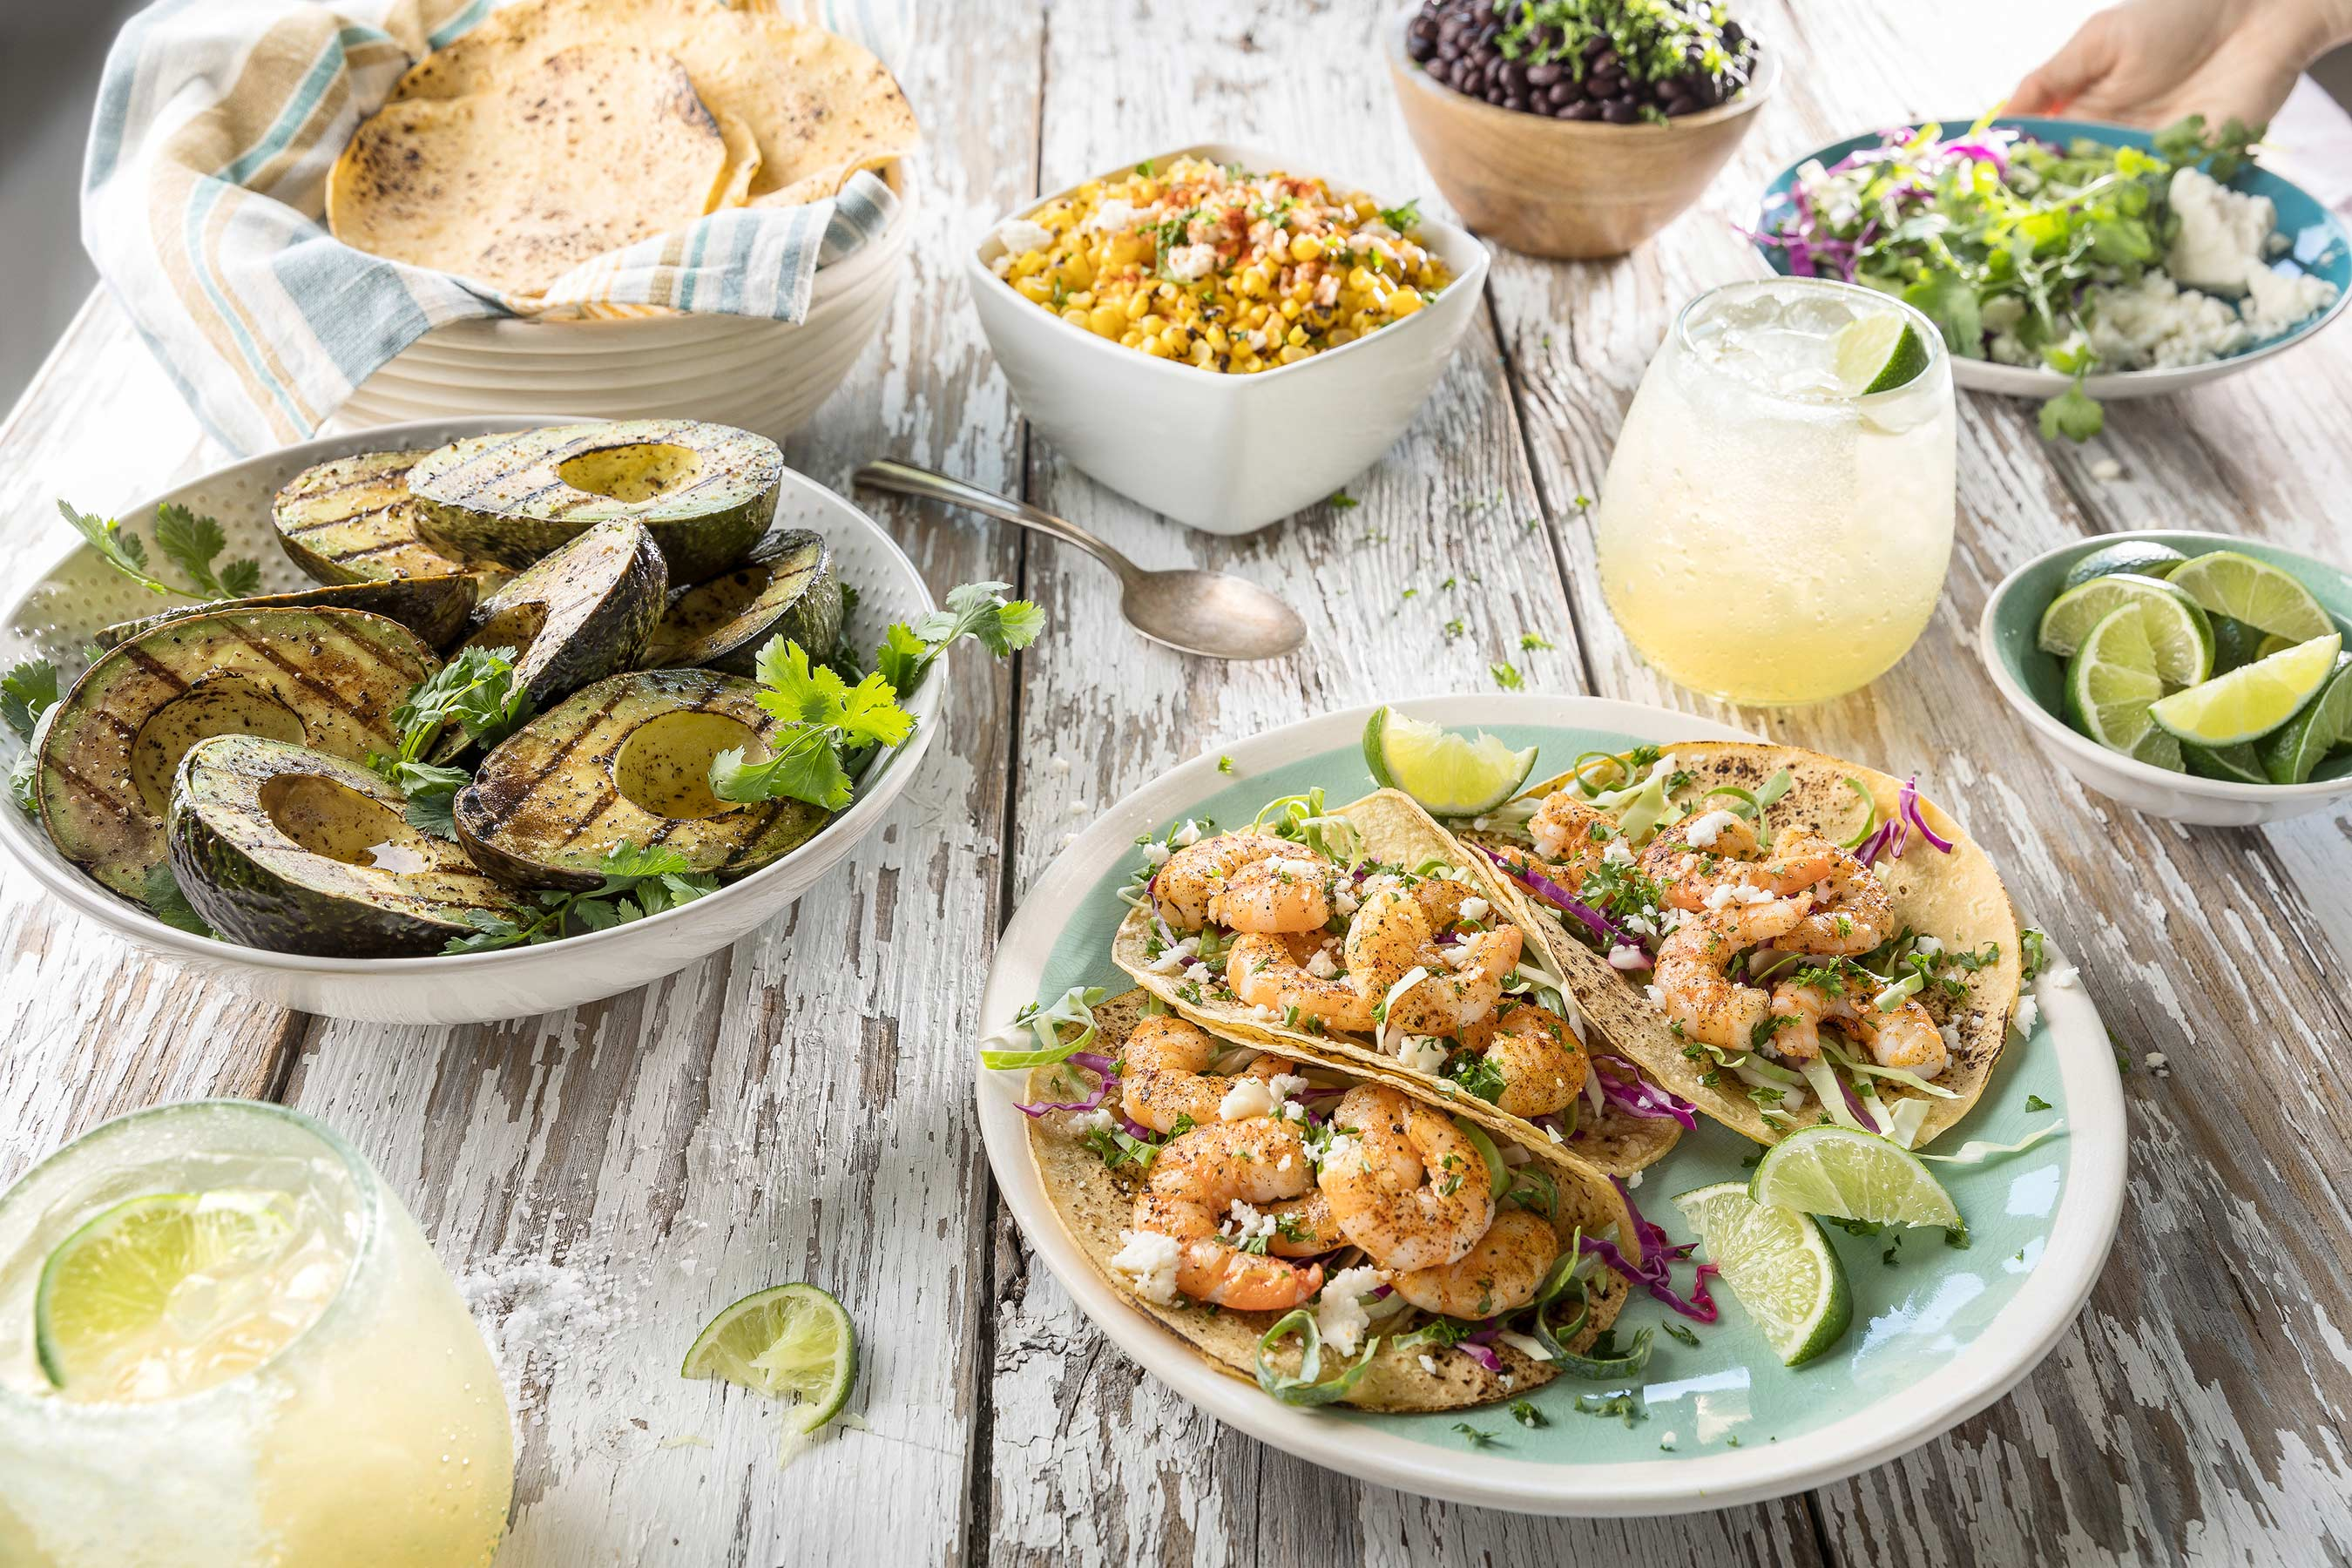 Shrimp Tacos with margarita's, elotes, black beans, avocado and limes